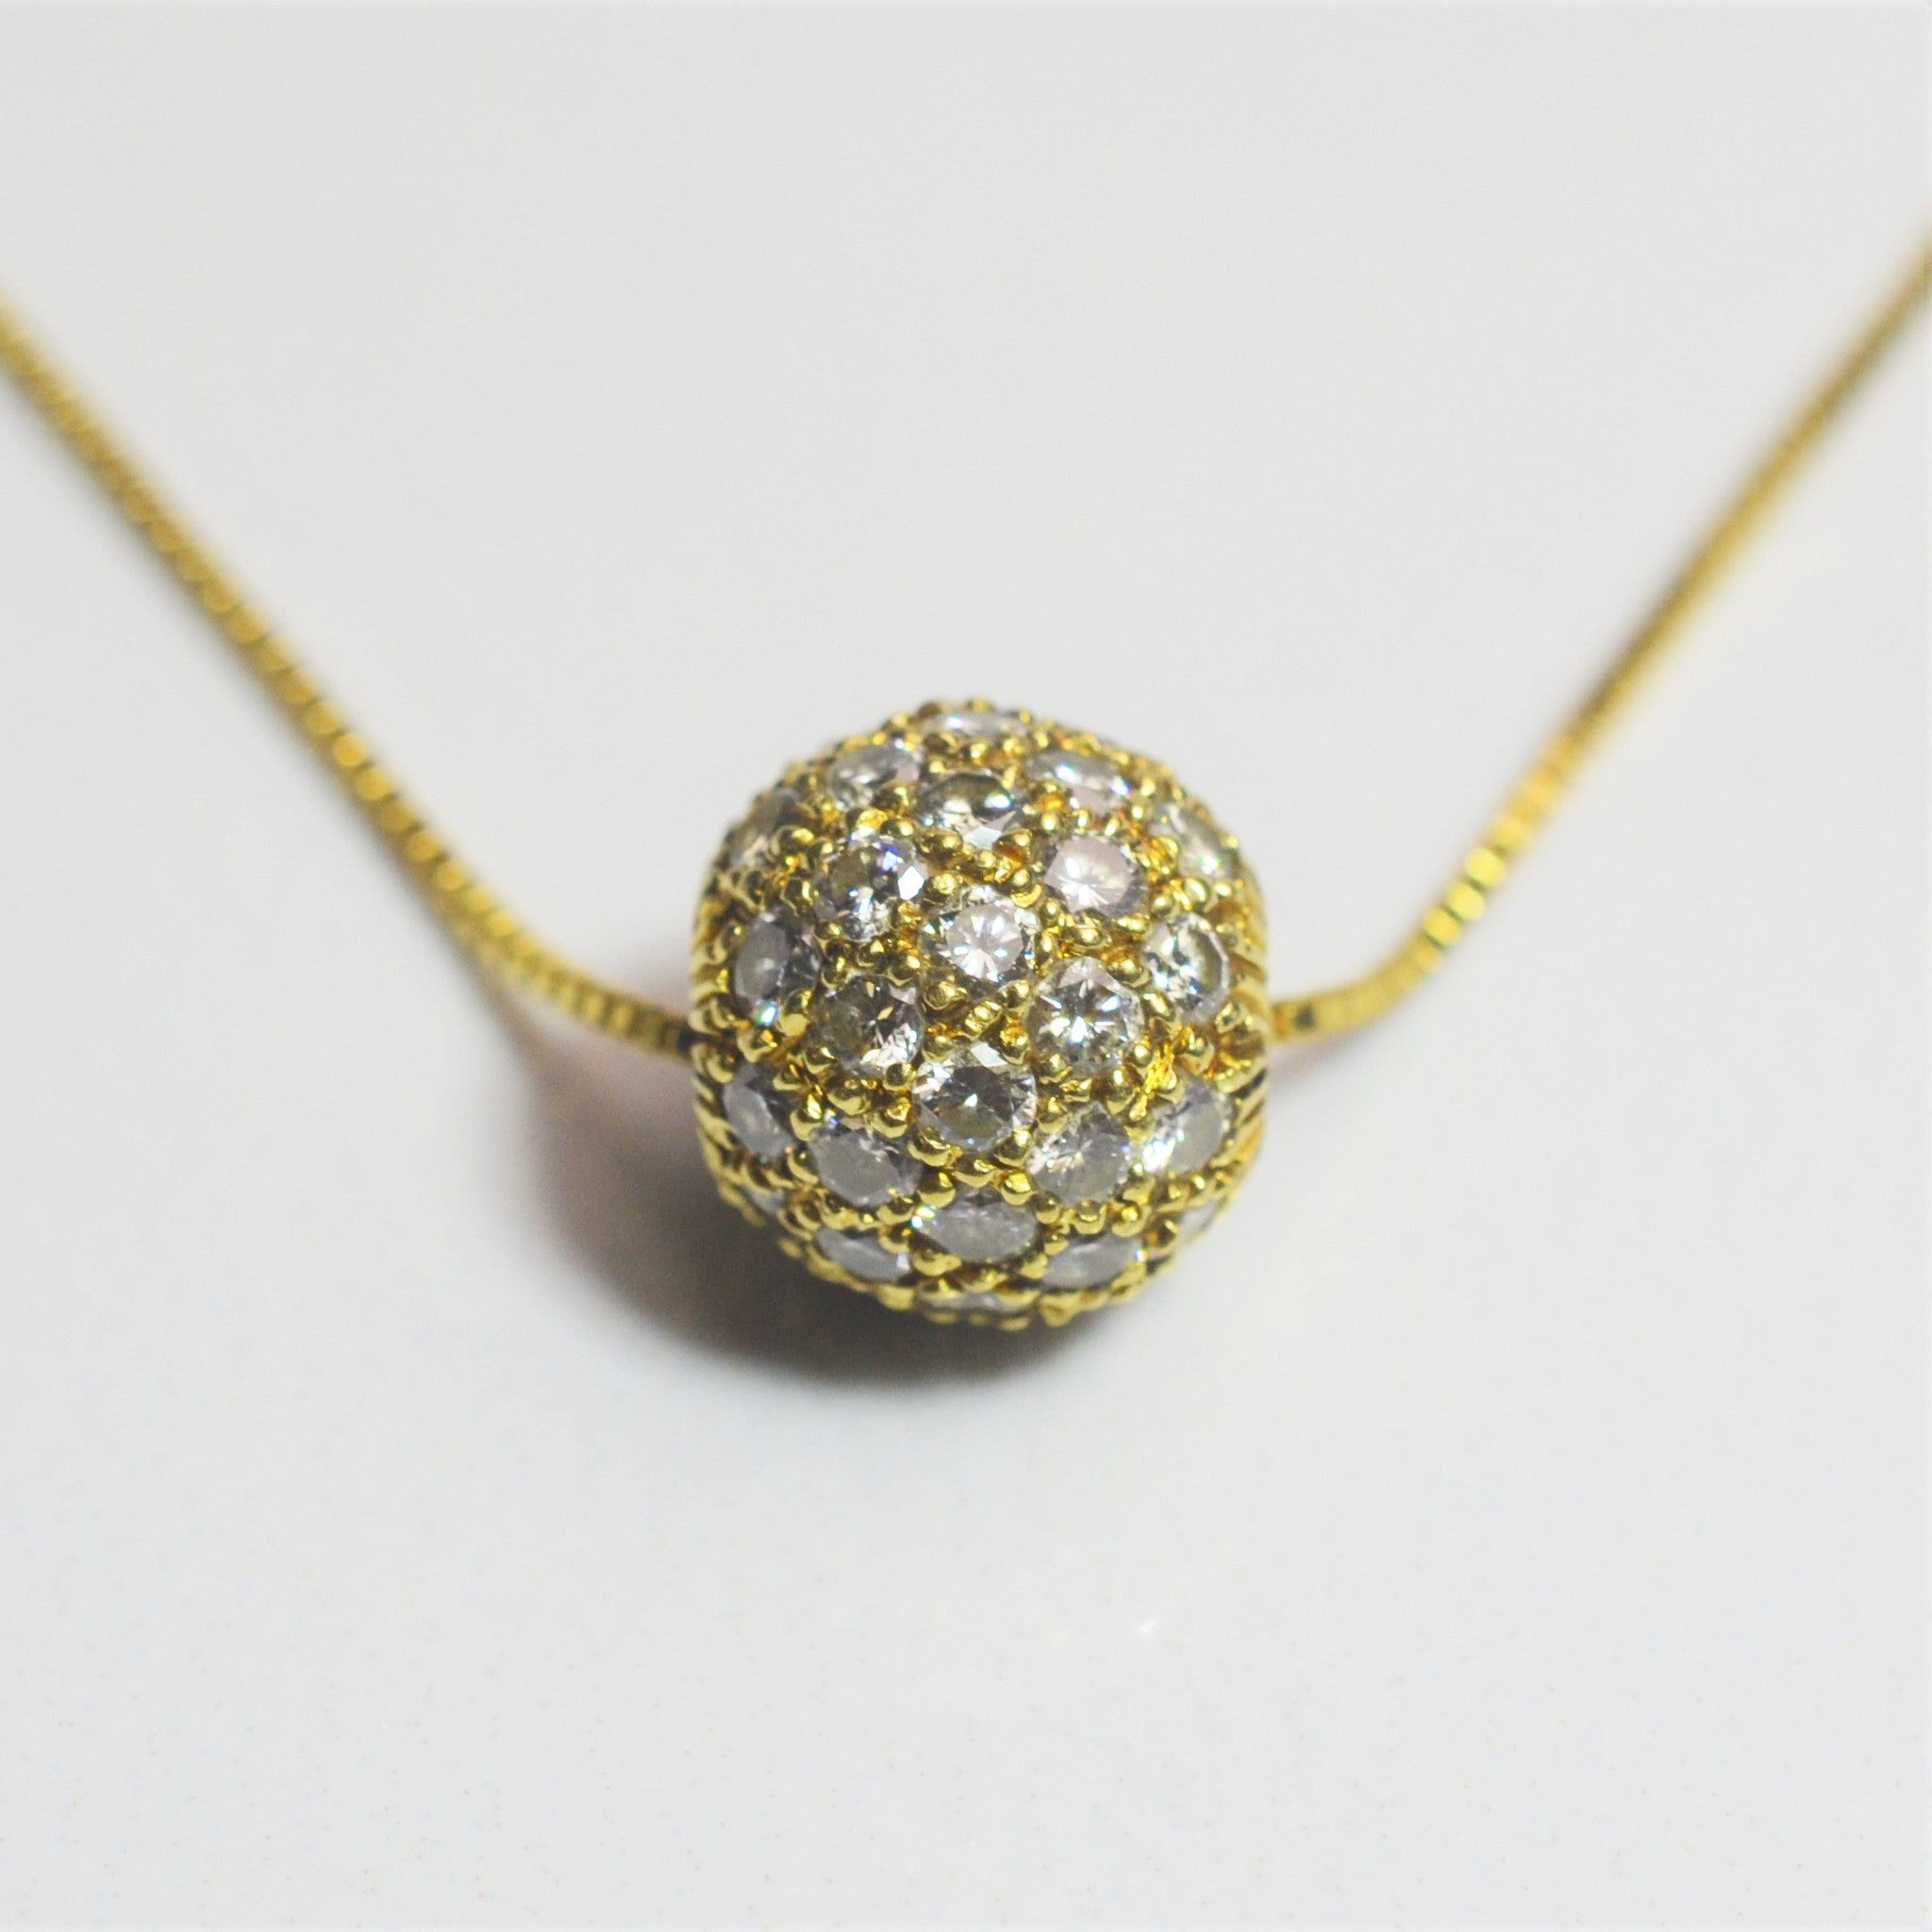 Diamond Pave Ball Necklace | 1.25ctw | 18"